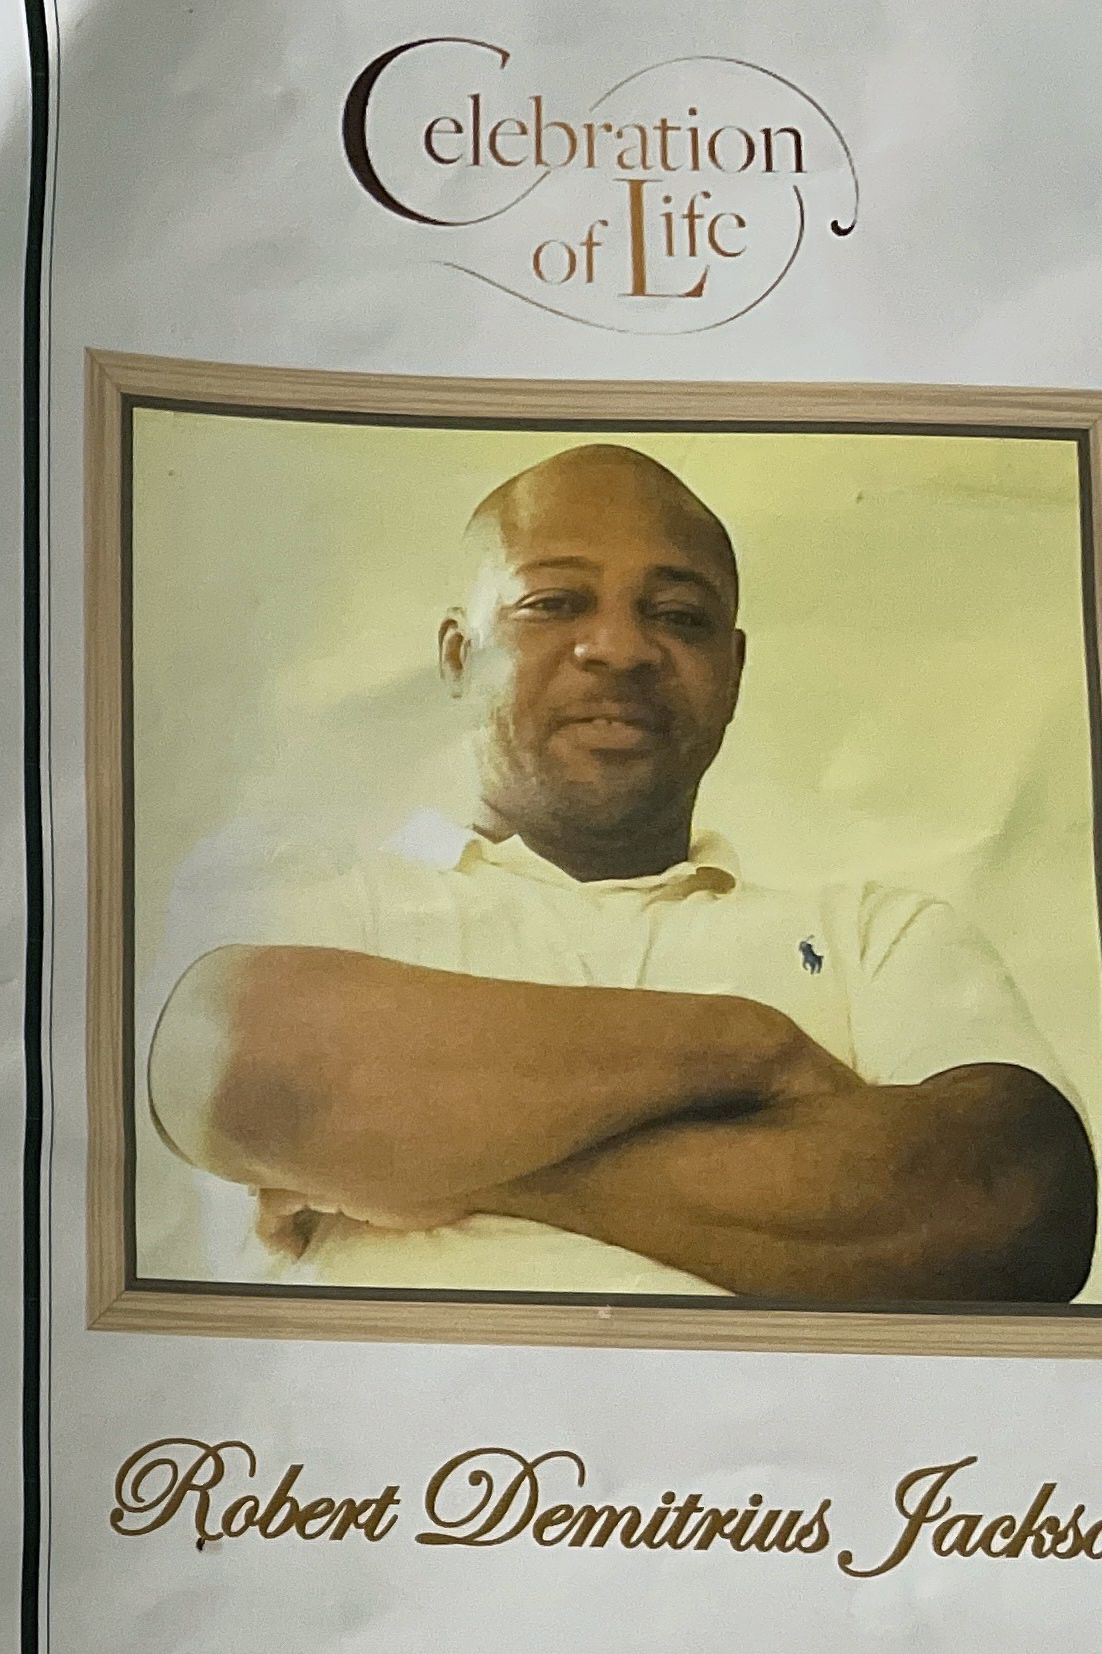 Robert Jackson died inside a Rikers Island jail cell on June 30 after a Correction Officer monitoring him allegedly left their post.